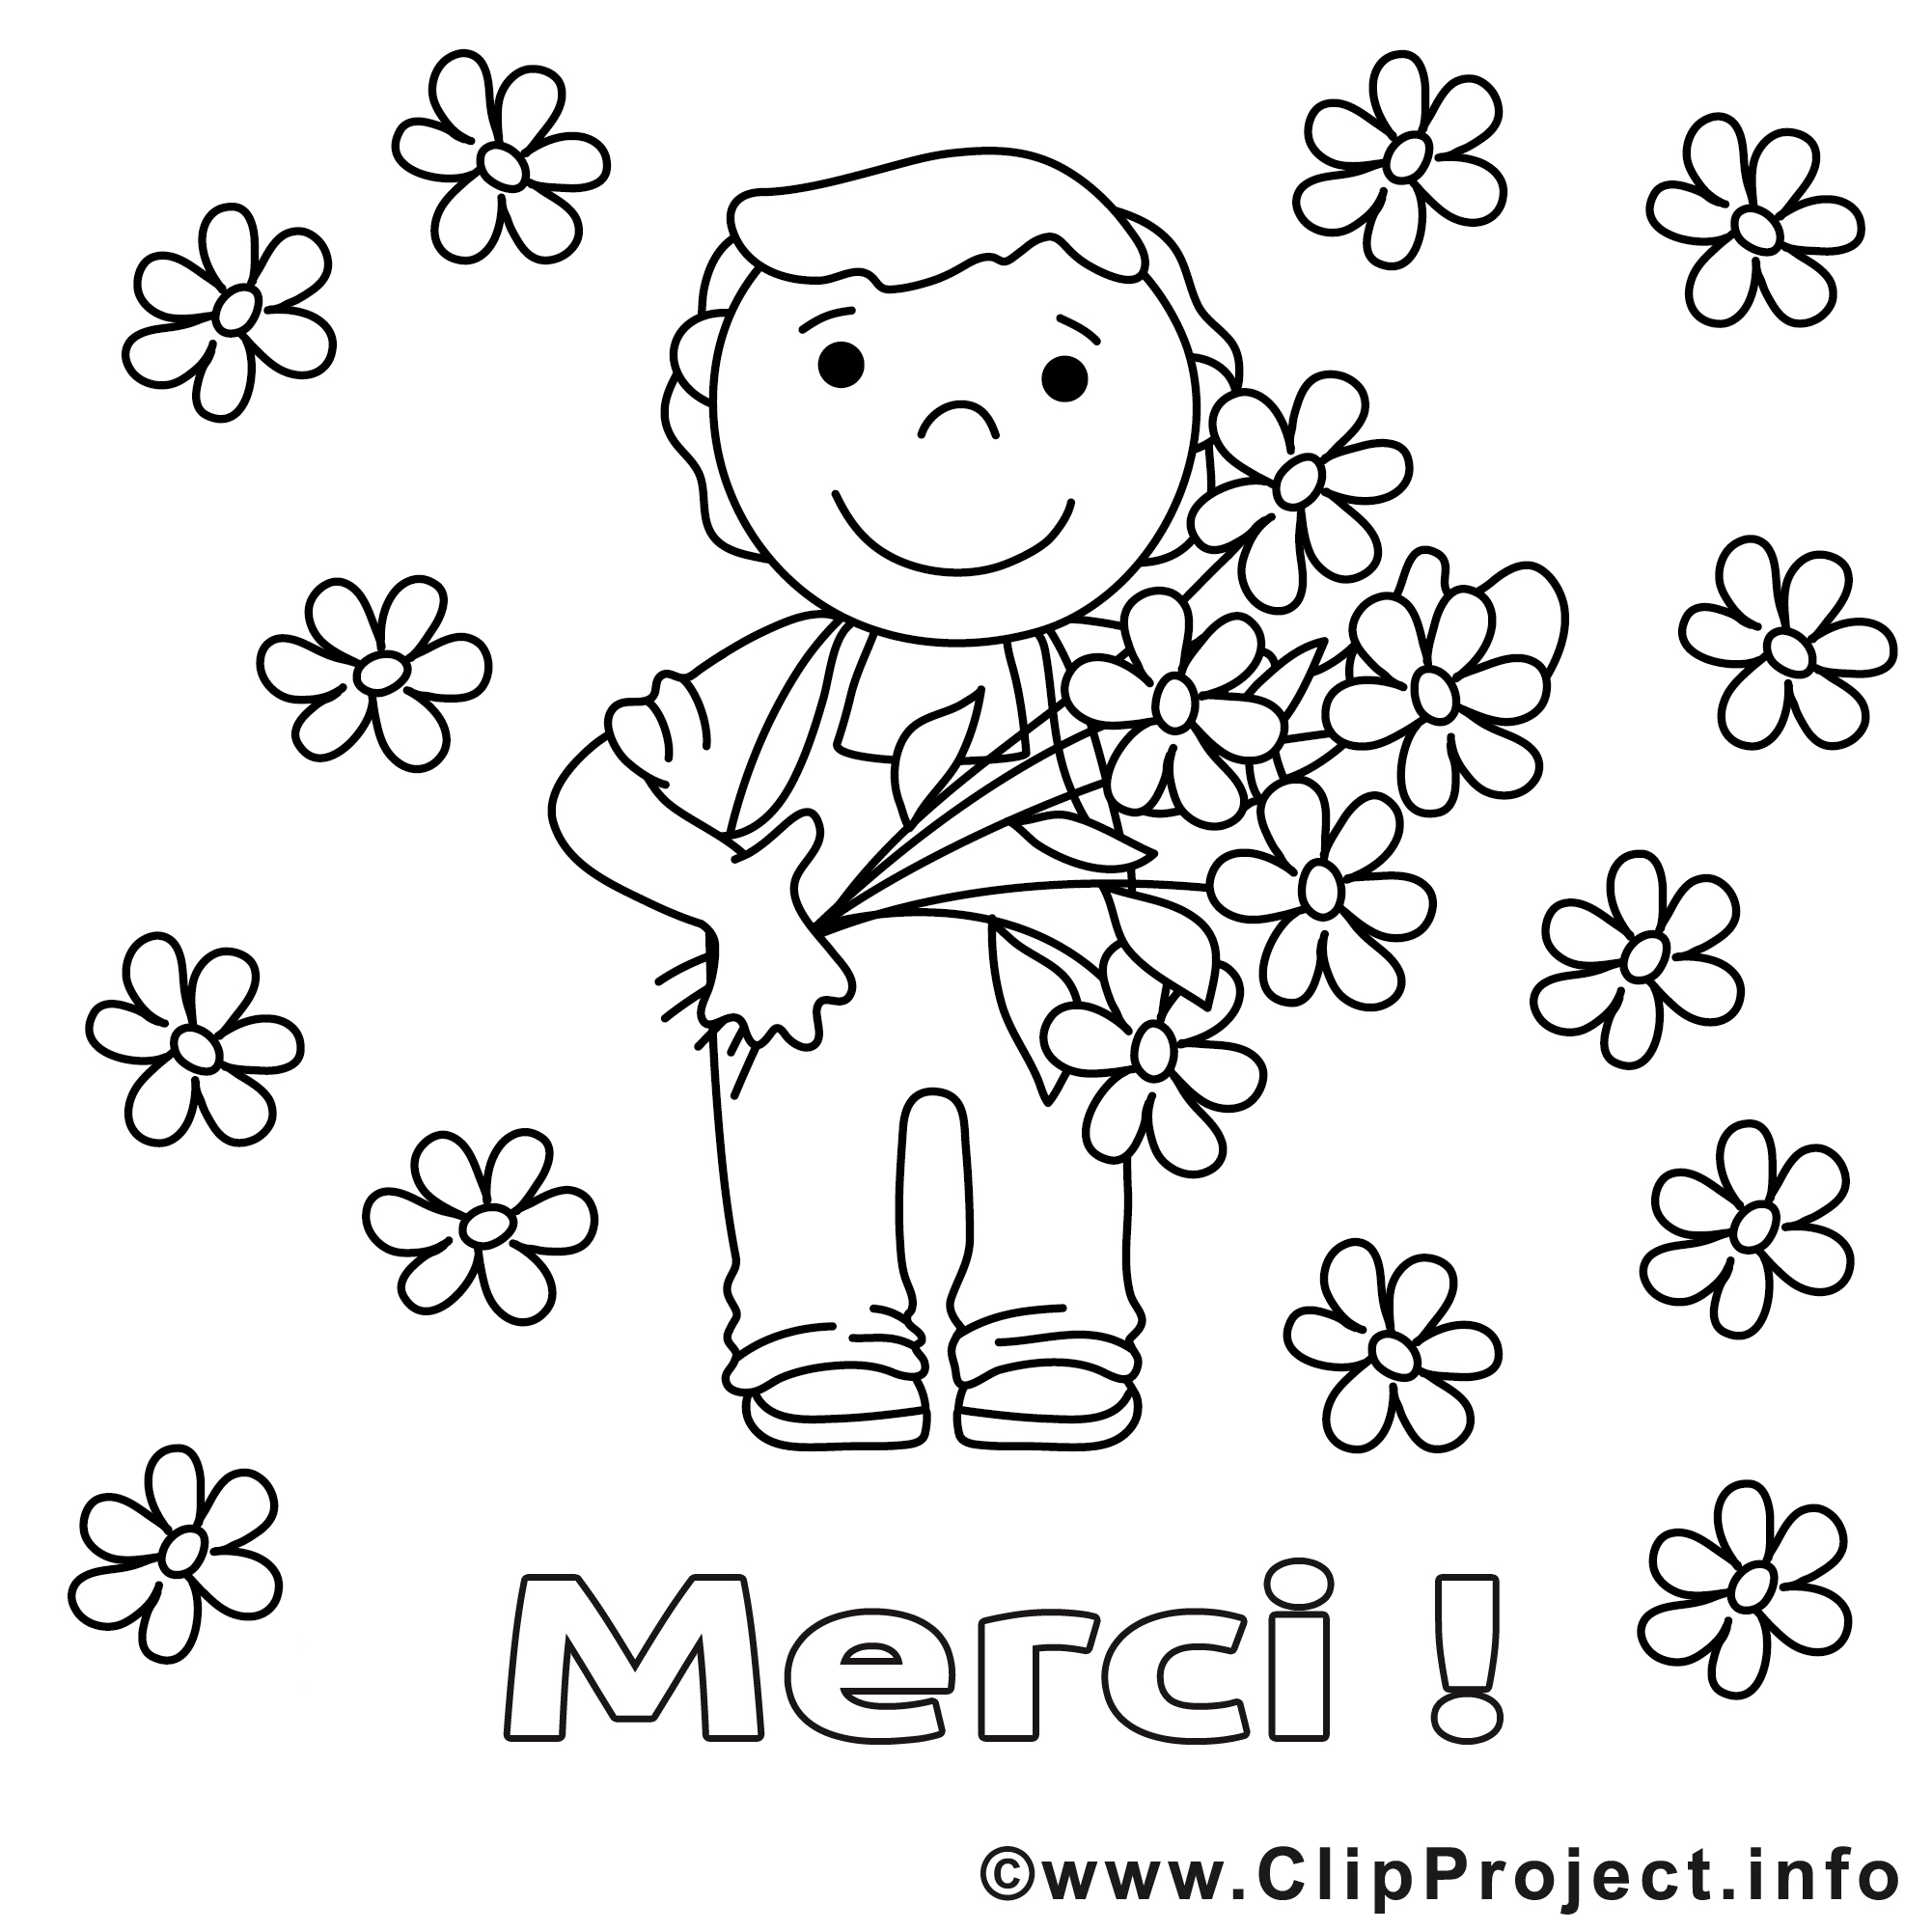 14 likewise Cuadro Para Pintar De Frozen further Black And White Sheep Vector 760044 further Index also Fleurs Dessins Gratuits  E2 80 93 Merci  C3 A0 Colorier 15563. on 0 237